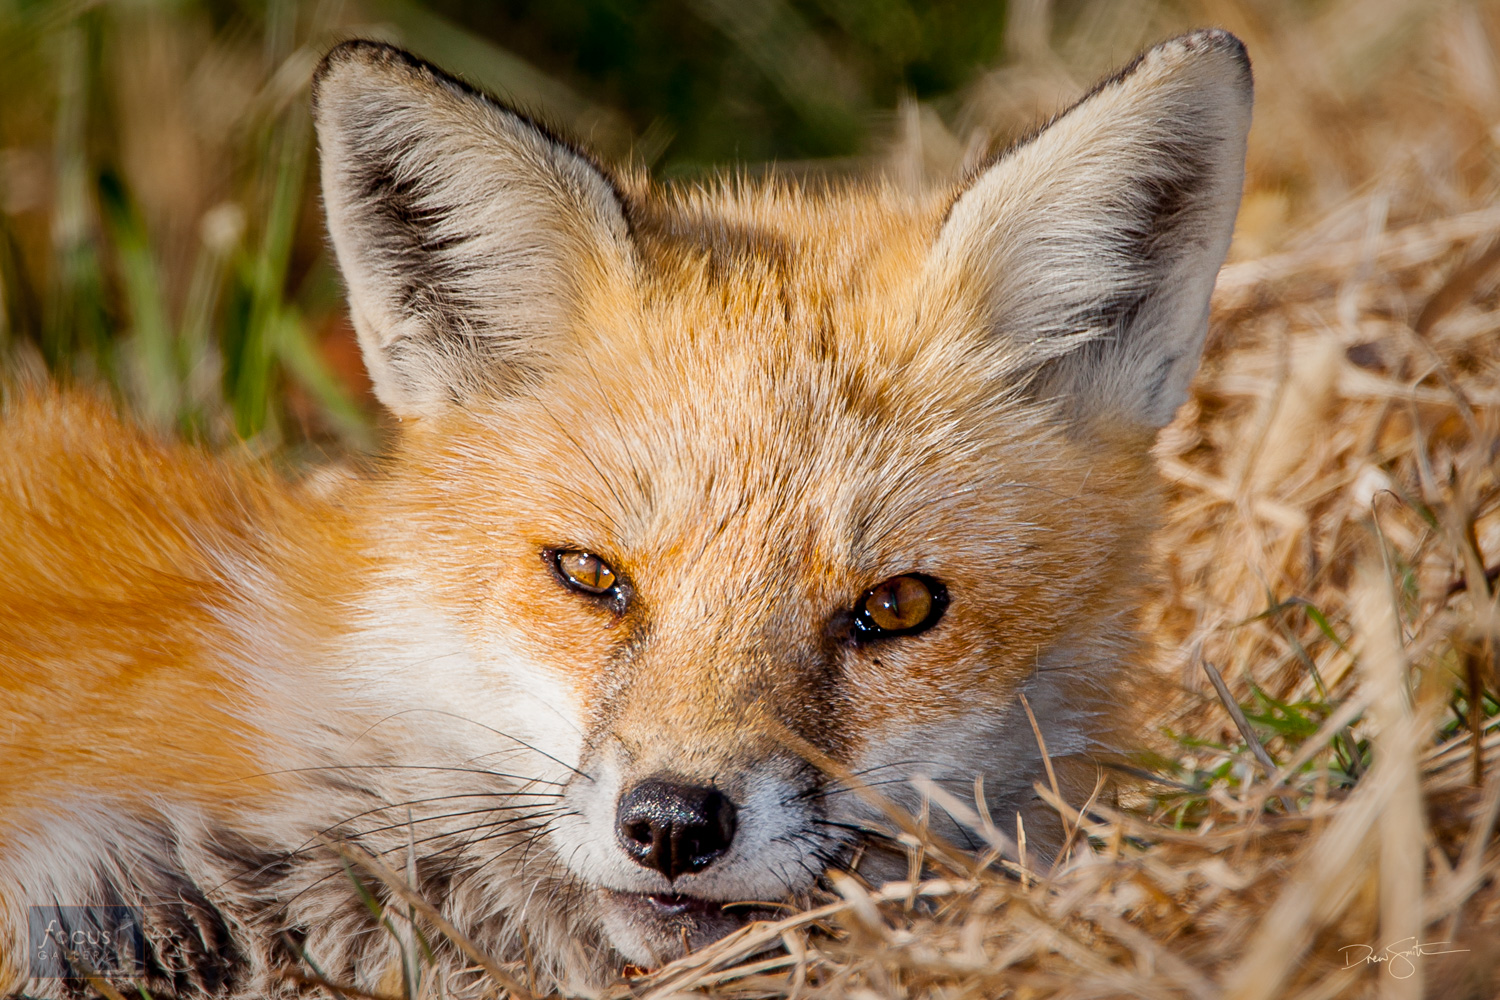 A red fox looks at the camera.